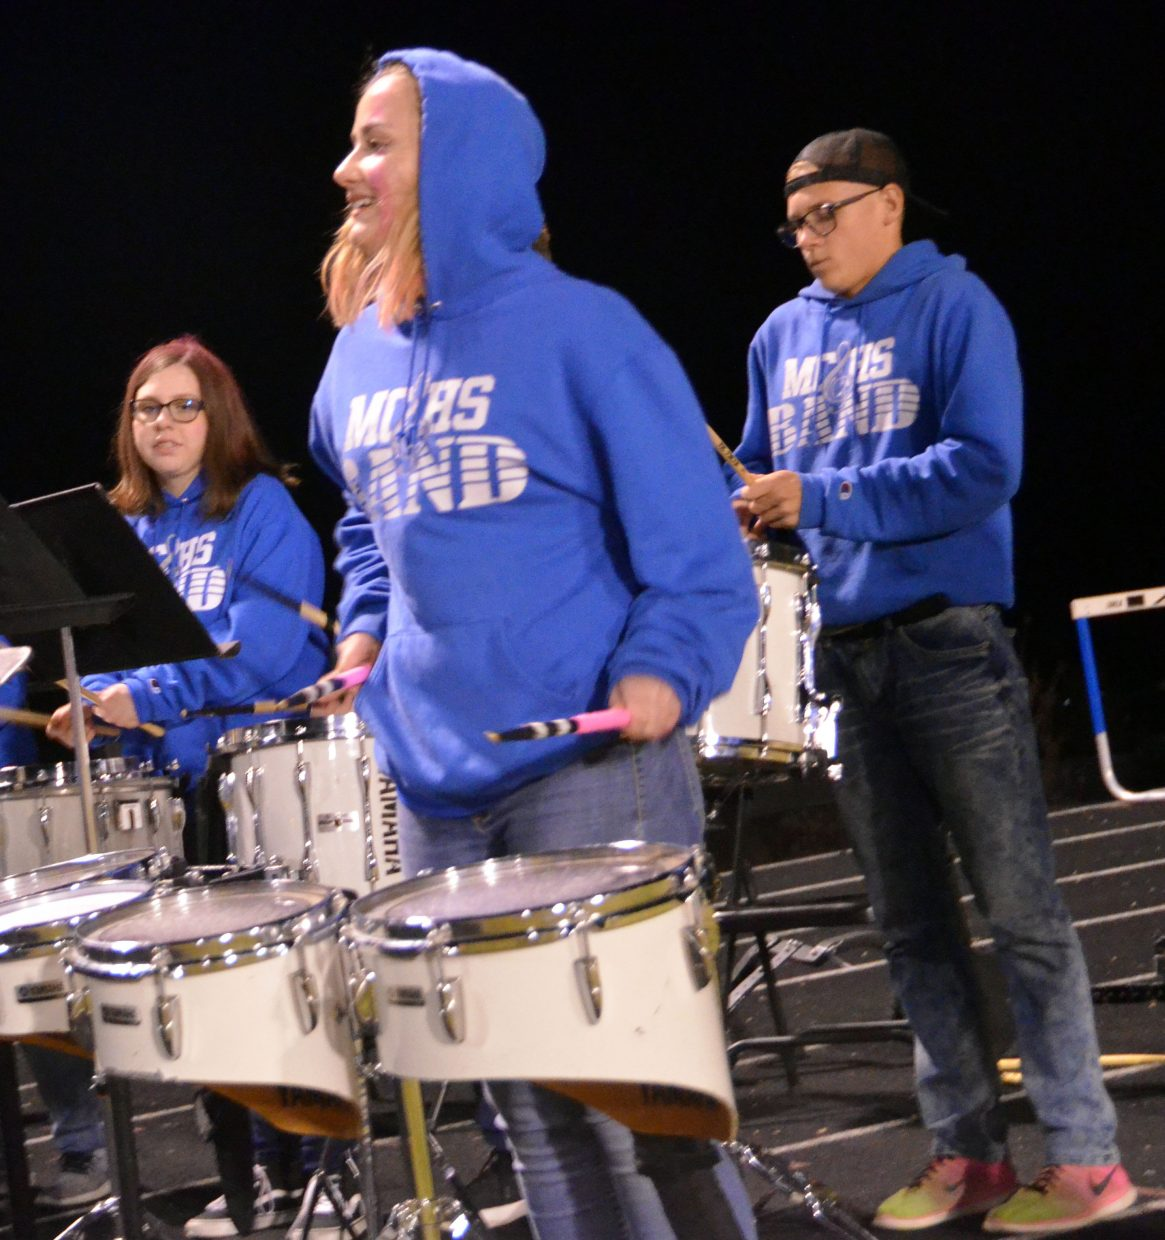 The Moffat County High School band's percussion section stays lively during a timeout.